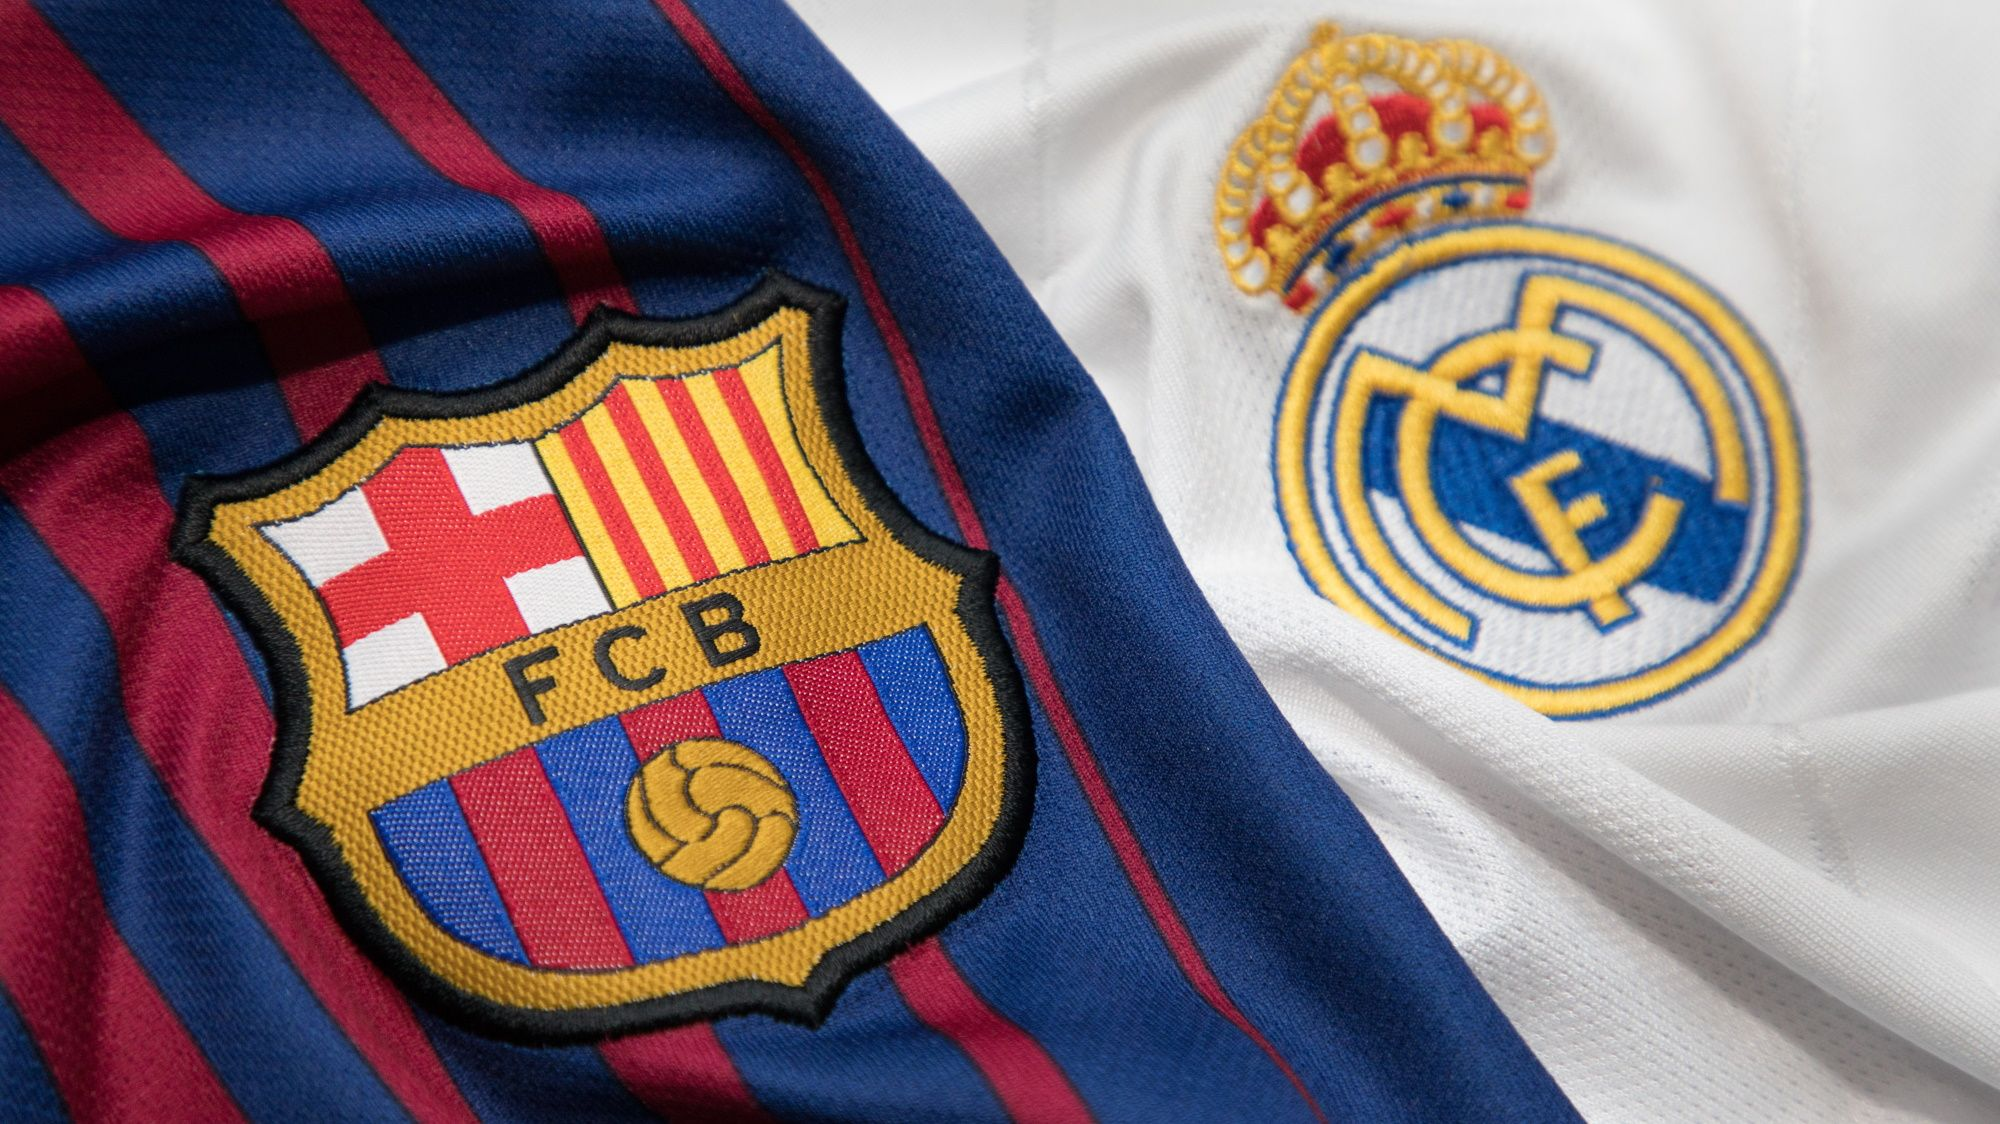 Barcelona Vs Real Madrid Live Stream How To Watch Today S El Clasico Online From Anywhere Barcelona Vs Real Madrid Real Madrid Real Madrid And Barcelona